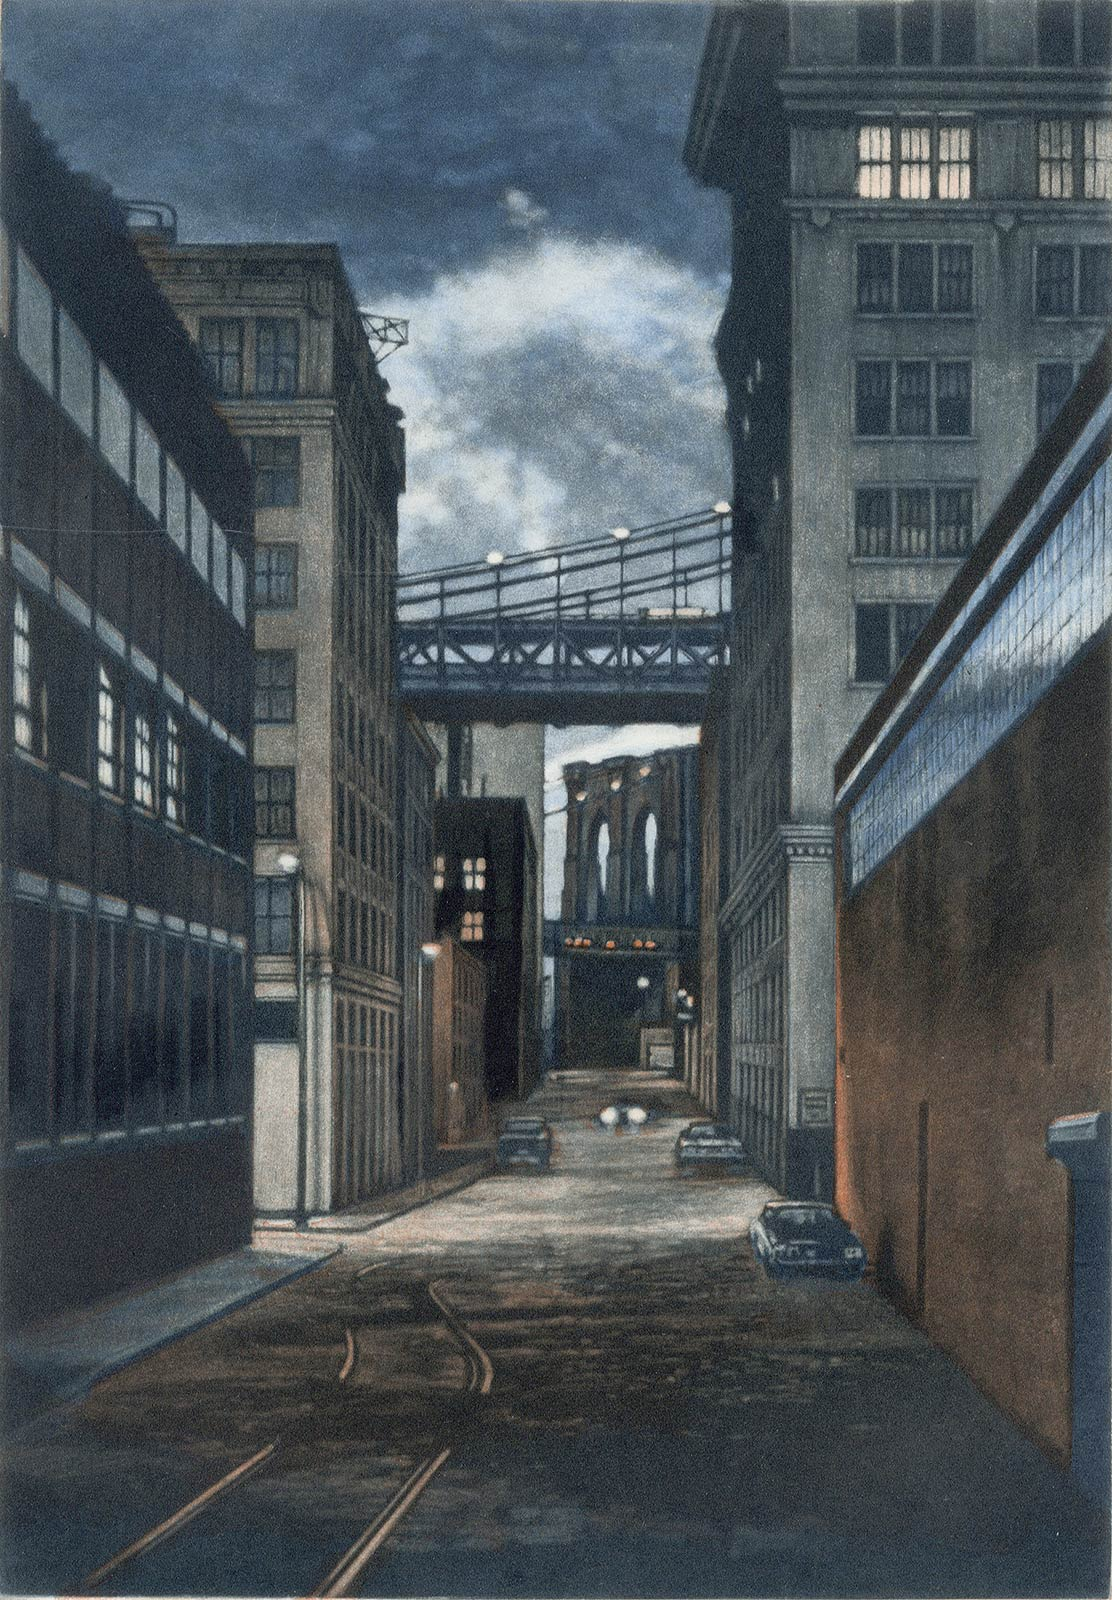 Plymouth Street ( a twilight scene is set in the Brooklyn section of DUMBO)